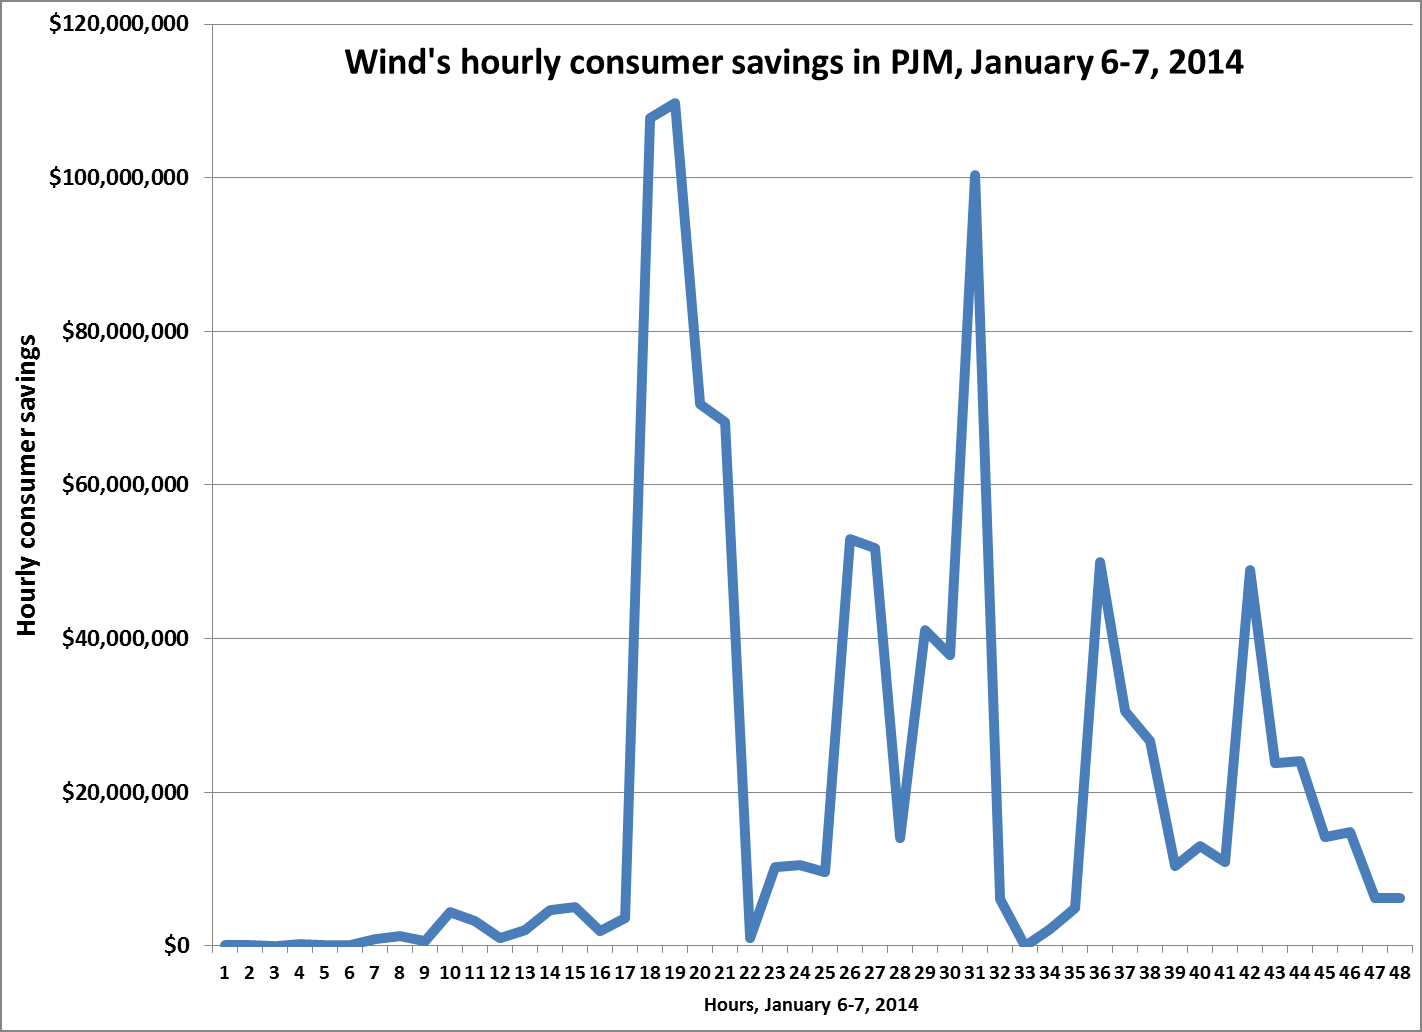 wind-polar-PJM-savings-awea.png